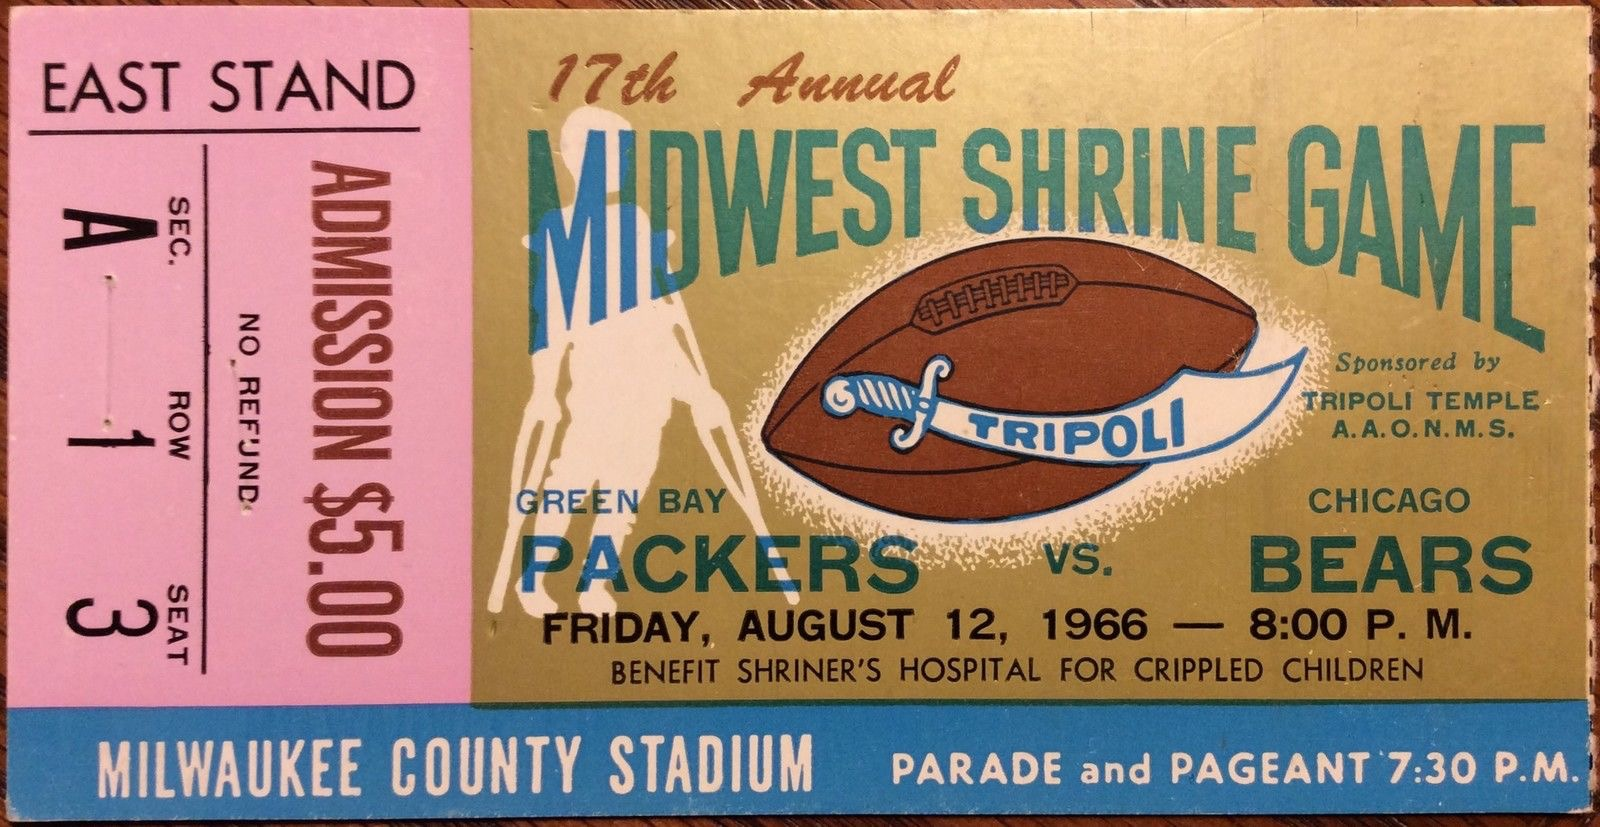 1966 NFL preseason Green Bay Packers vs Chicago Bears ticket stub